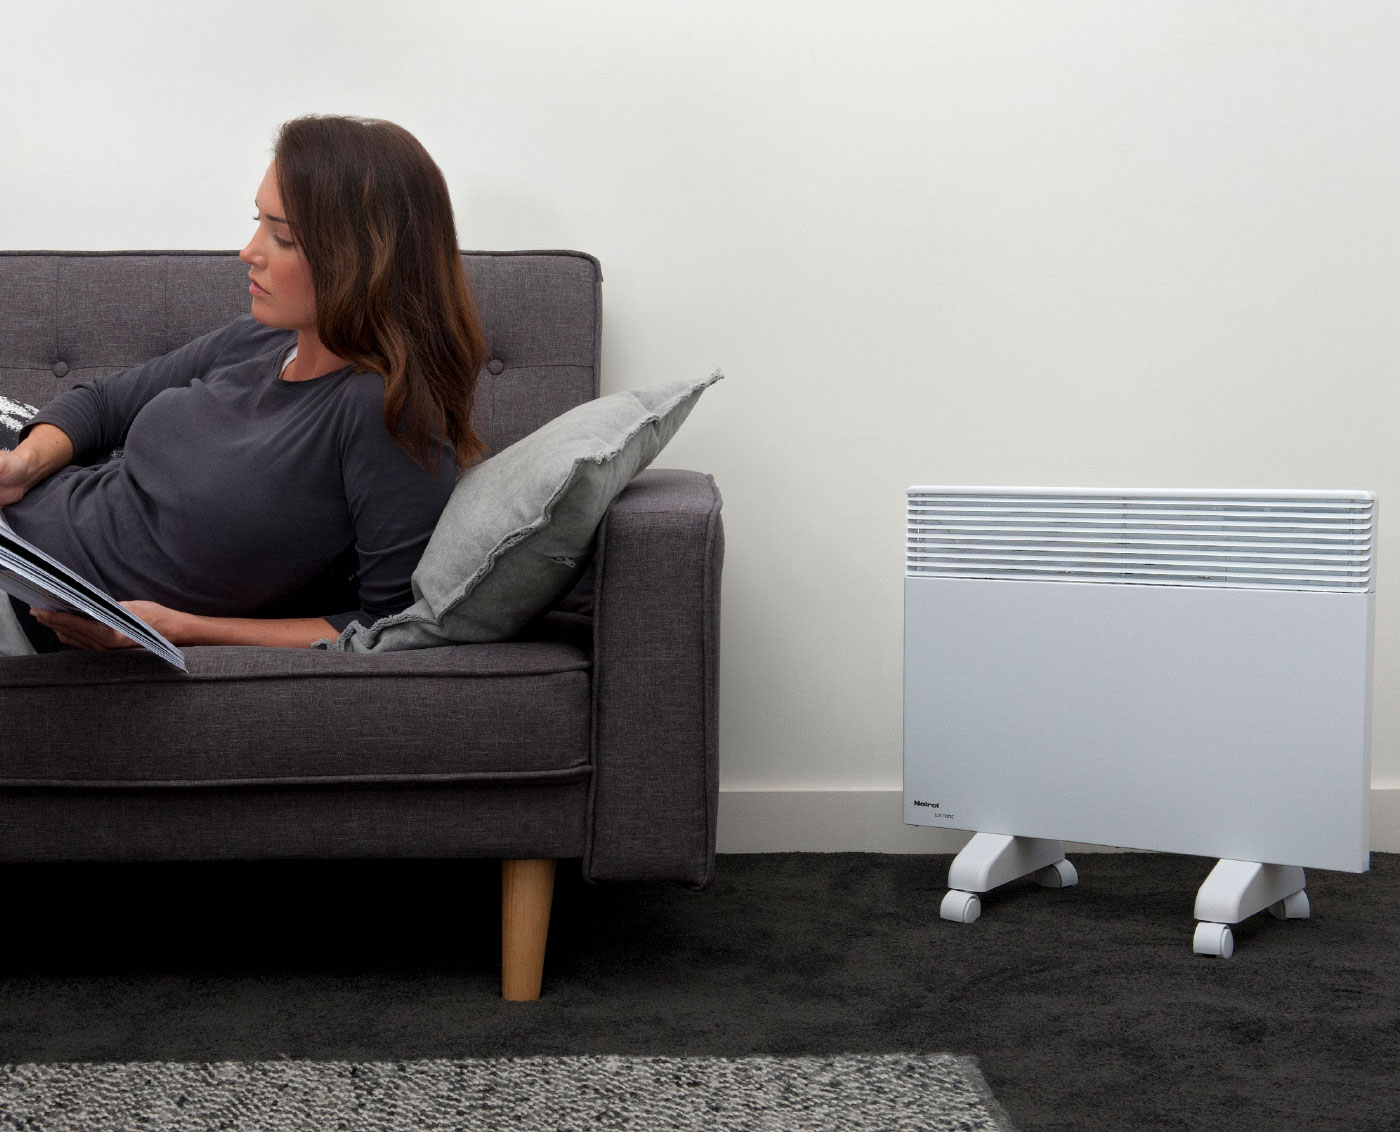 Safe heaters for your home